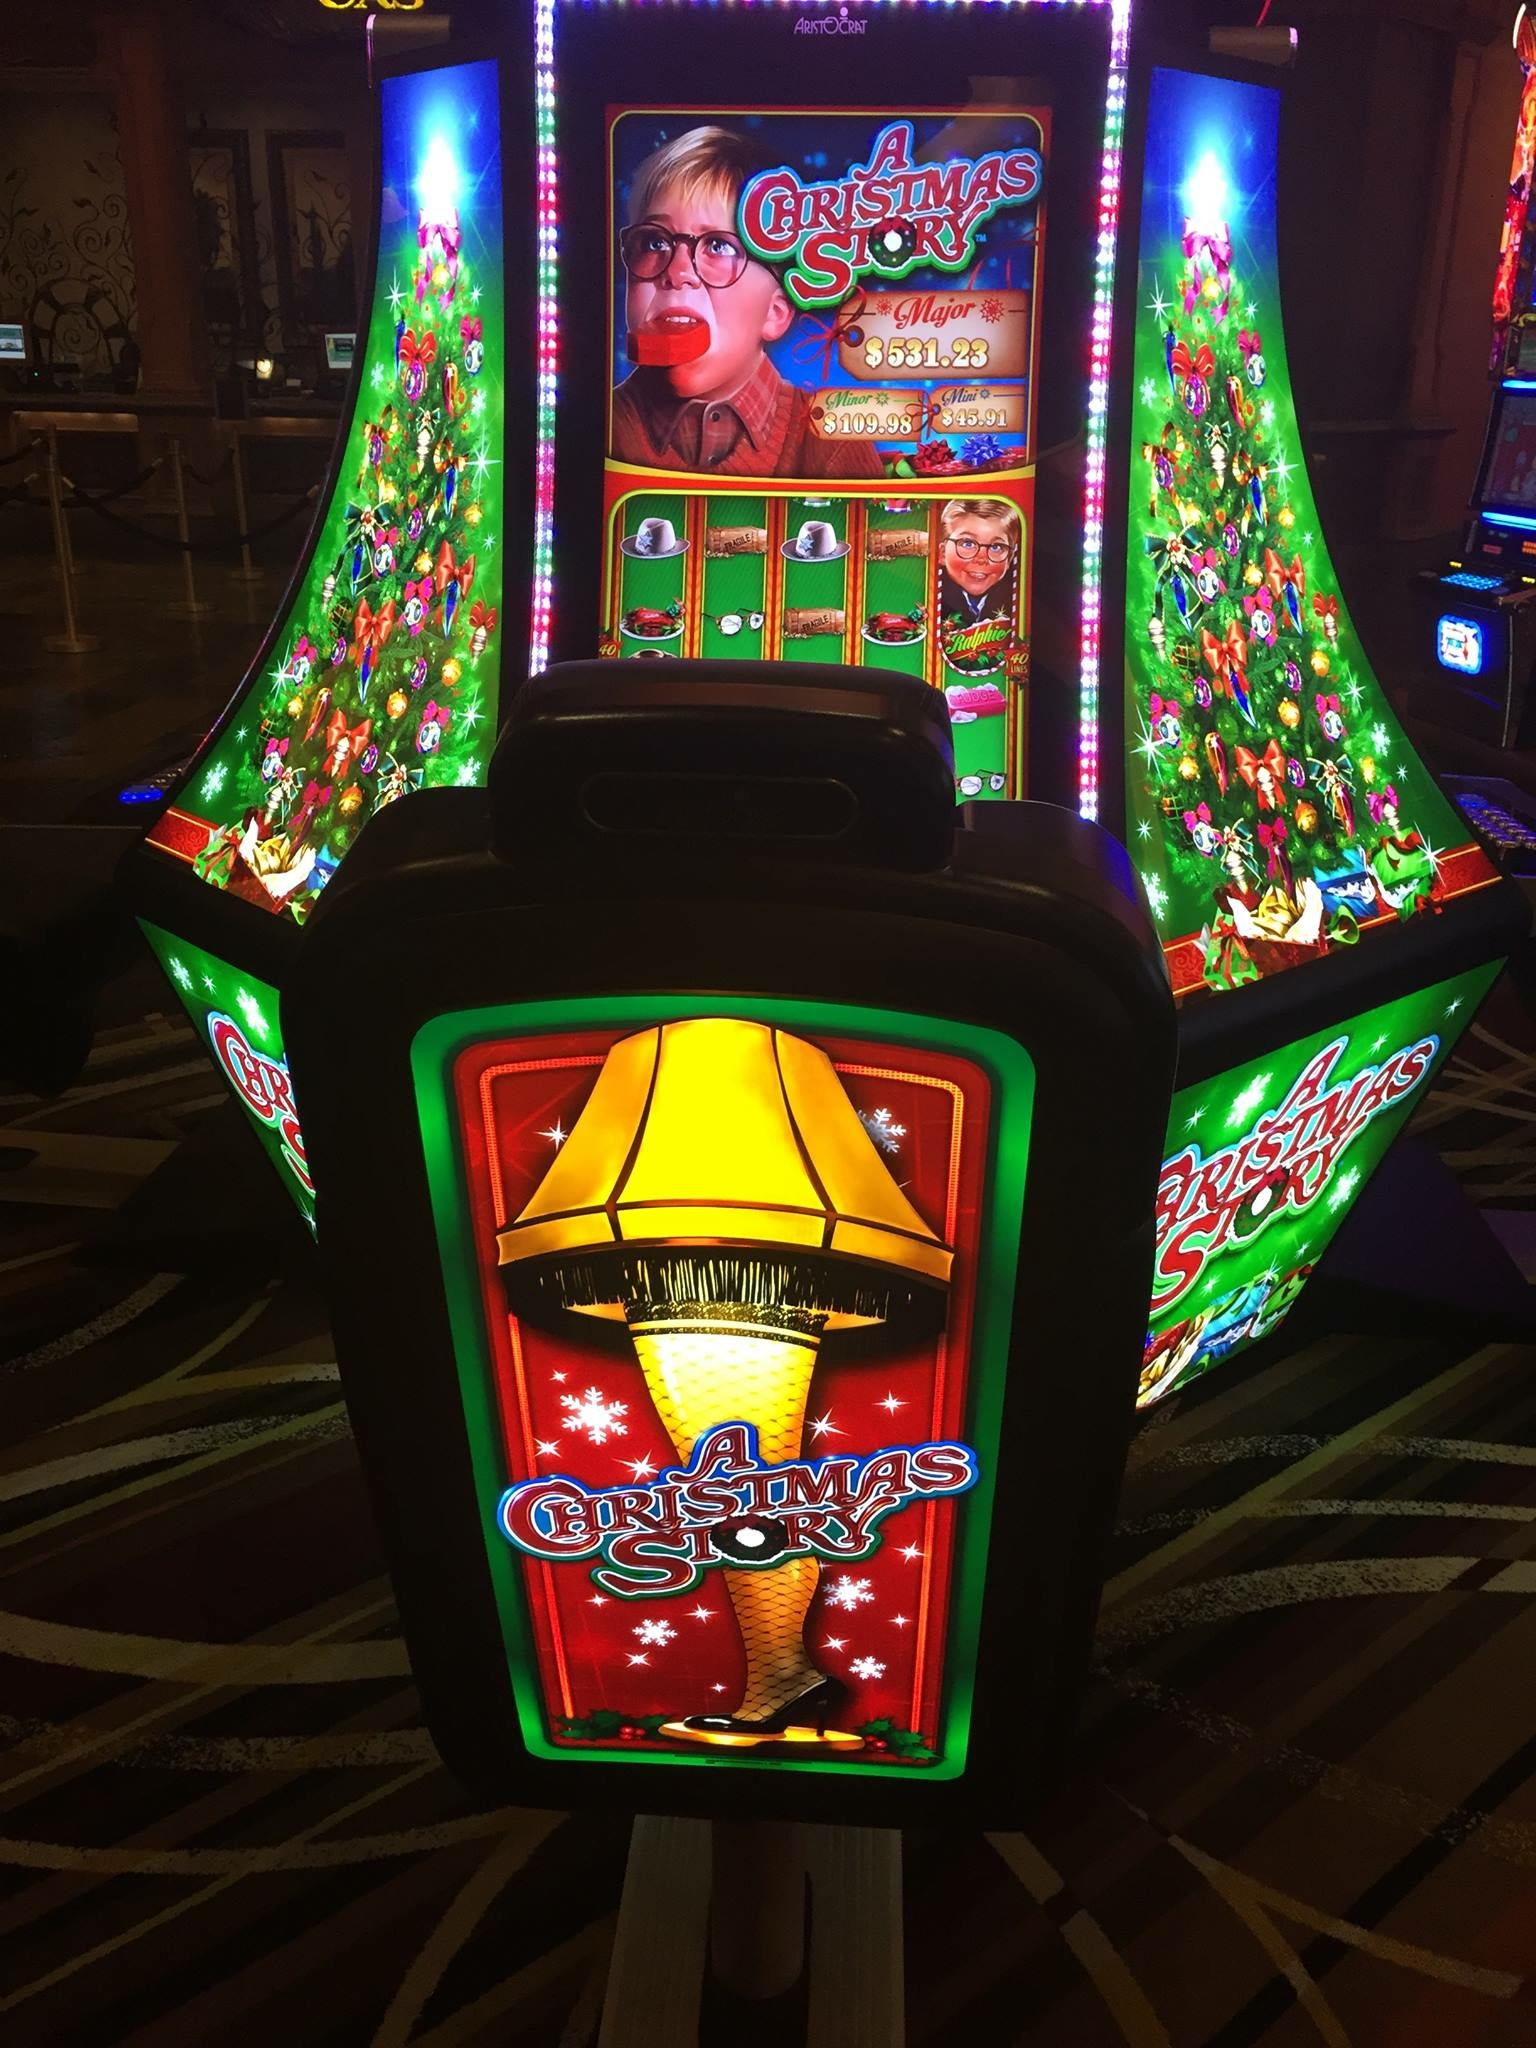 A Christmas Story Slot Machine